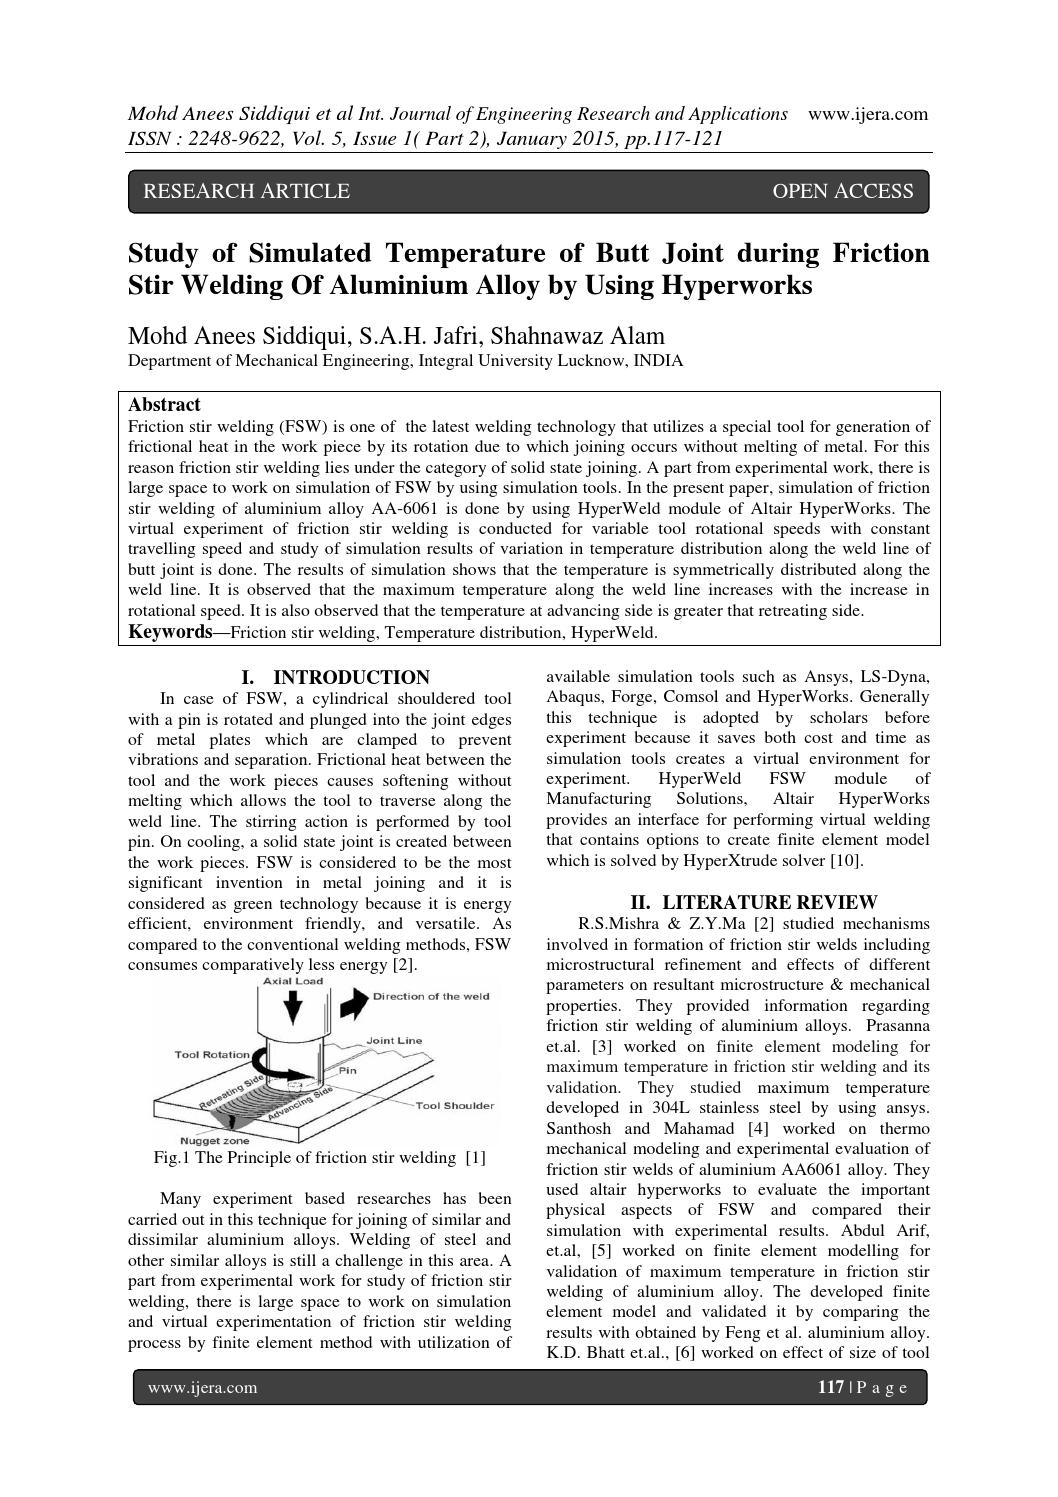 Study of Simulated Temperature of Butt Joint during Friction Stir